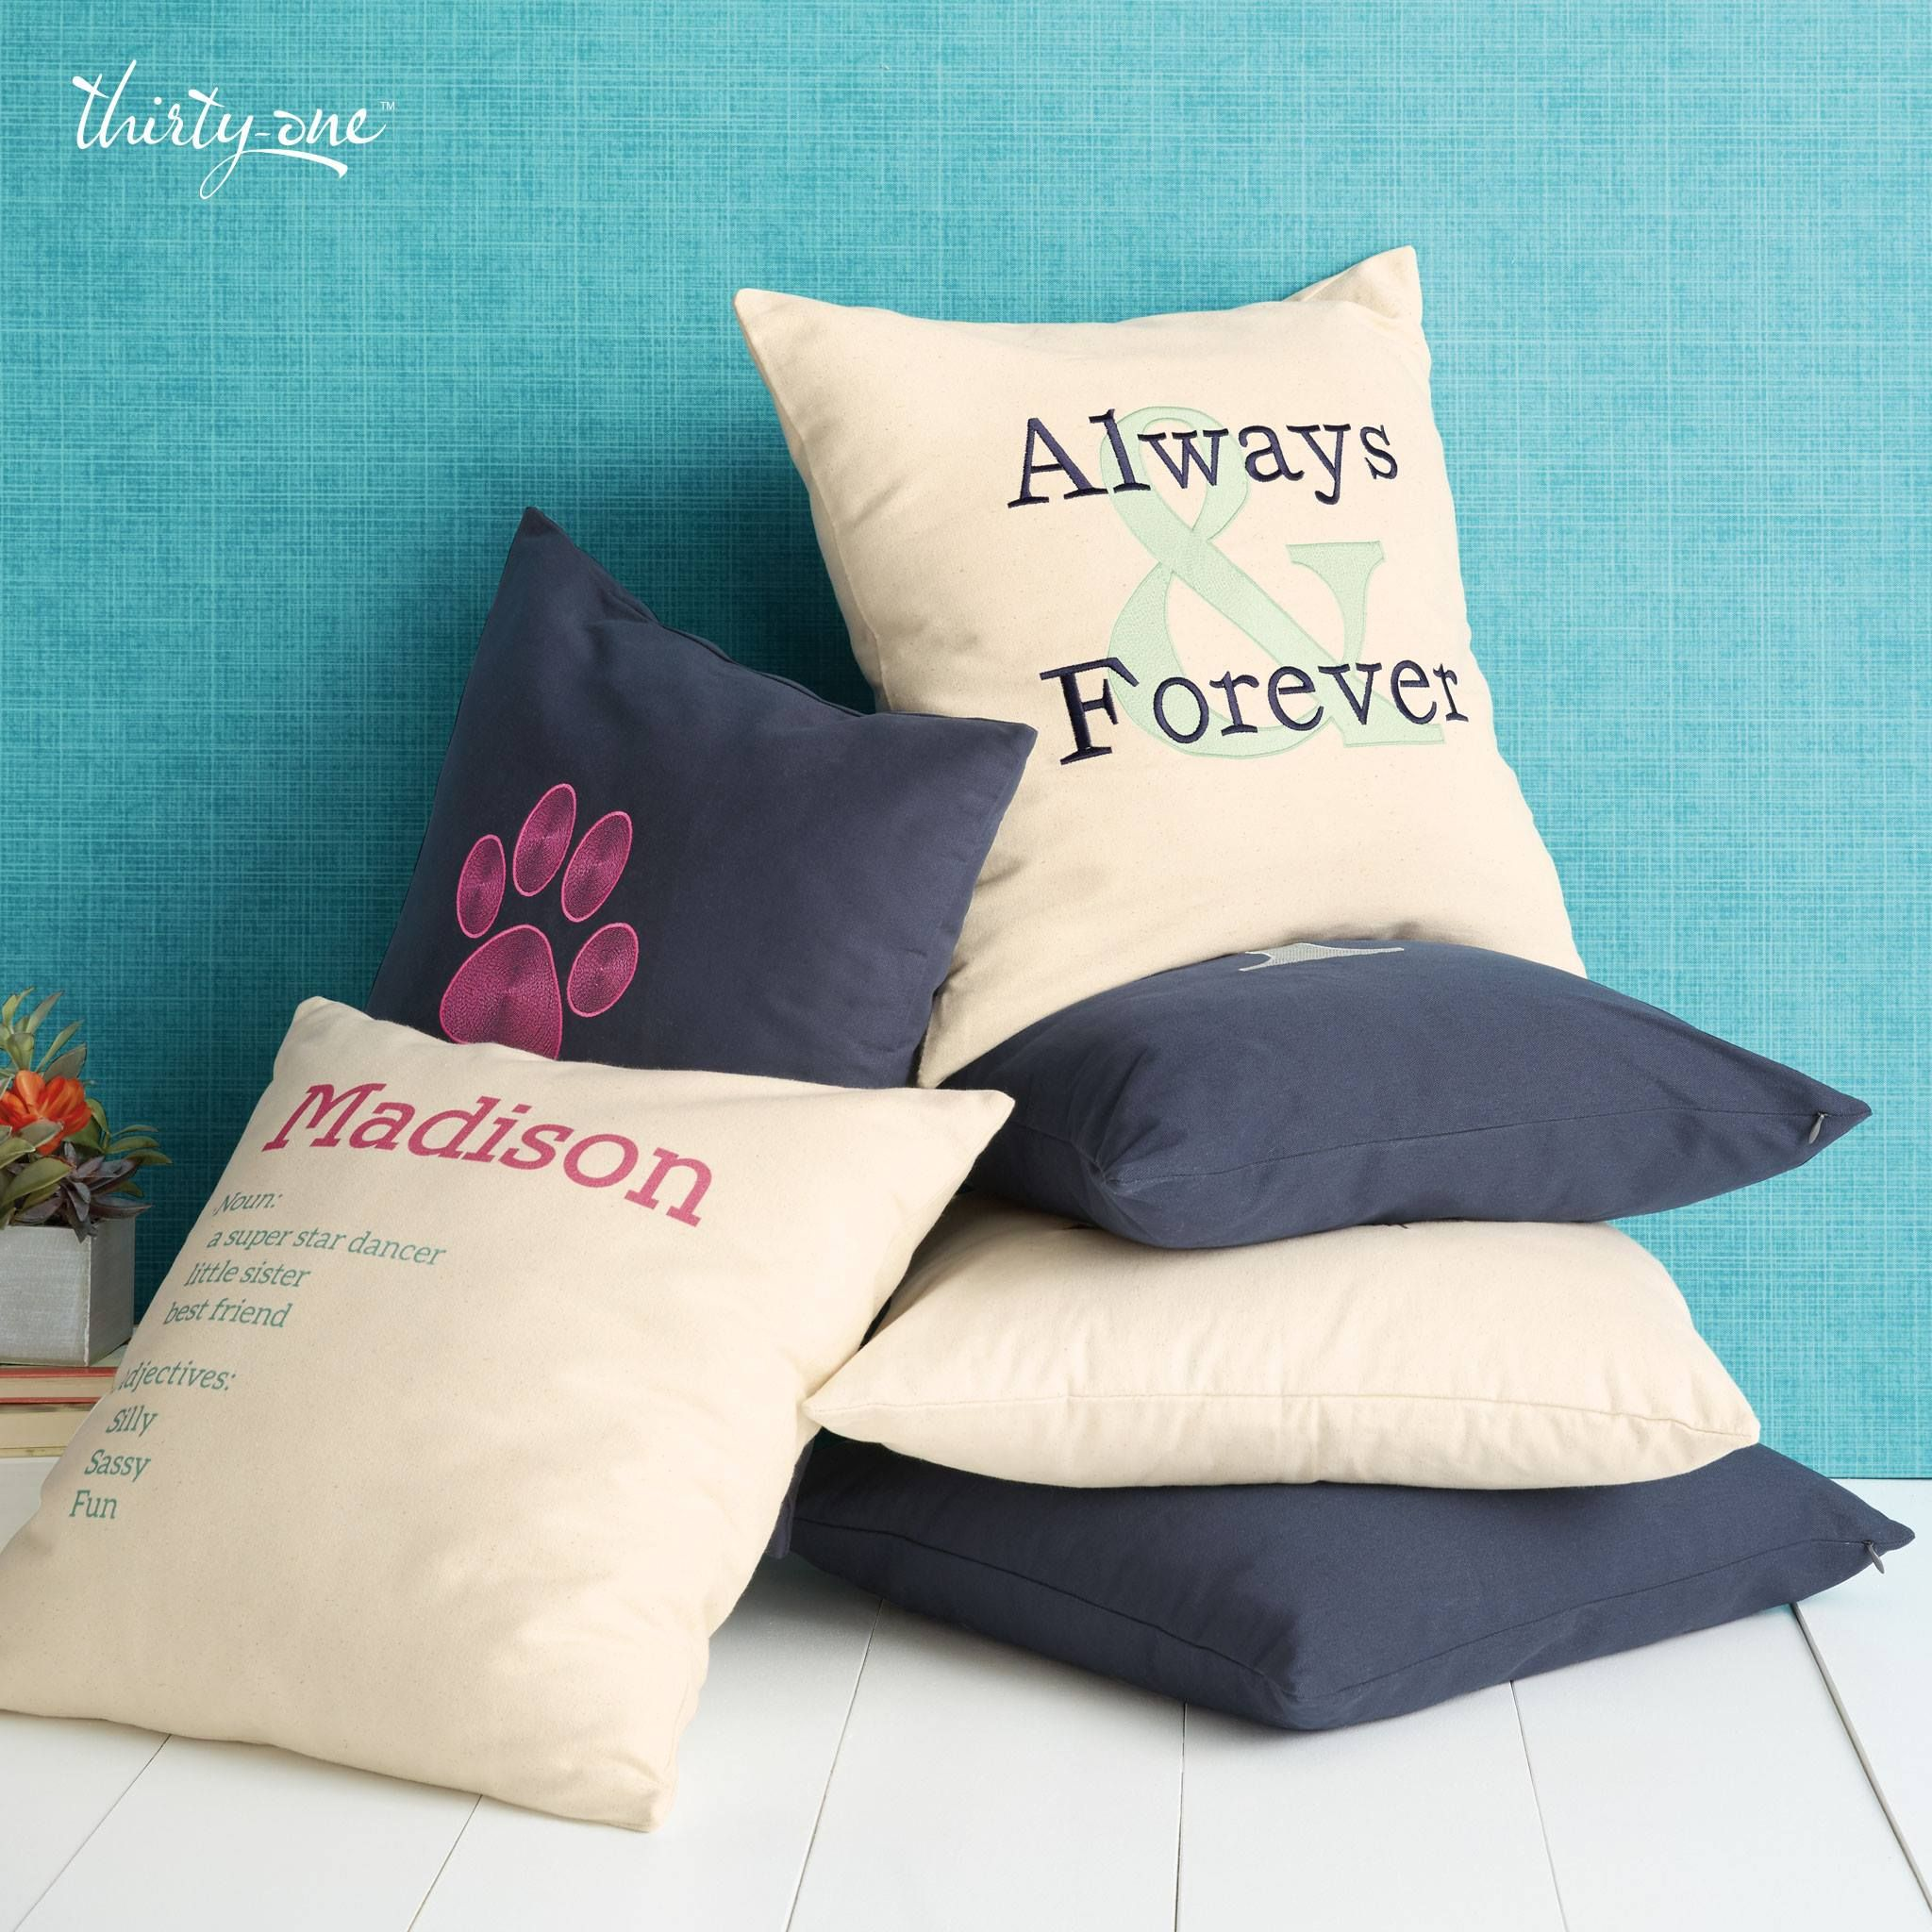 kneeling for pillow ideas of personalized handmade wedding beautiful pillows collection